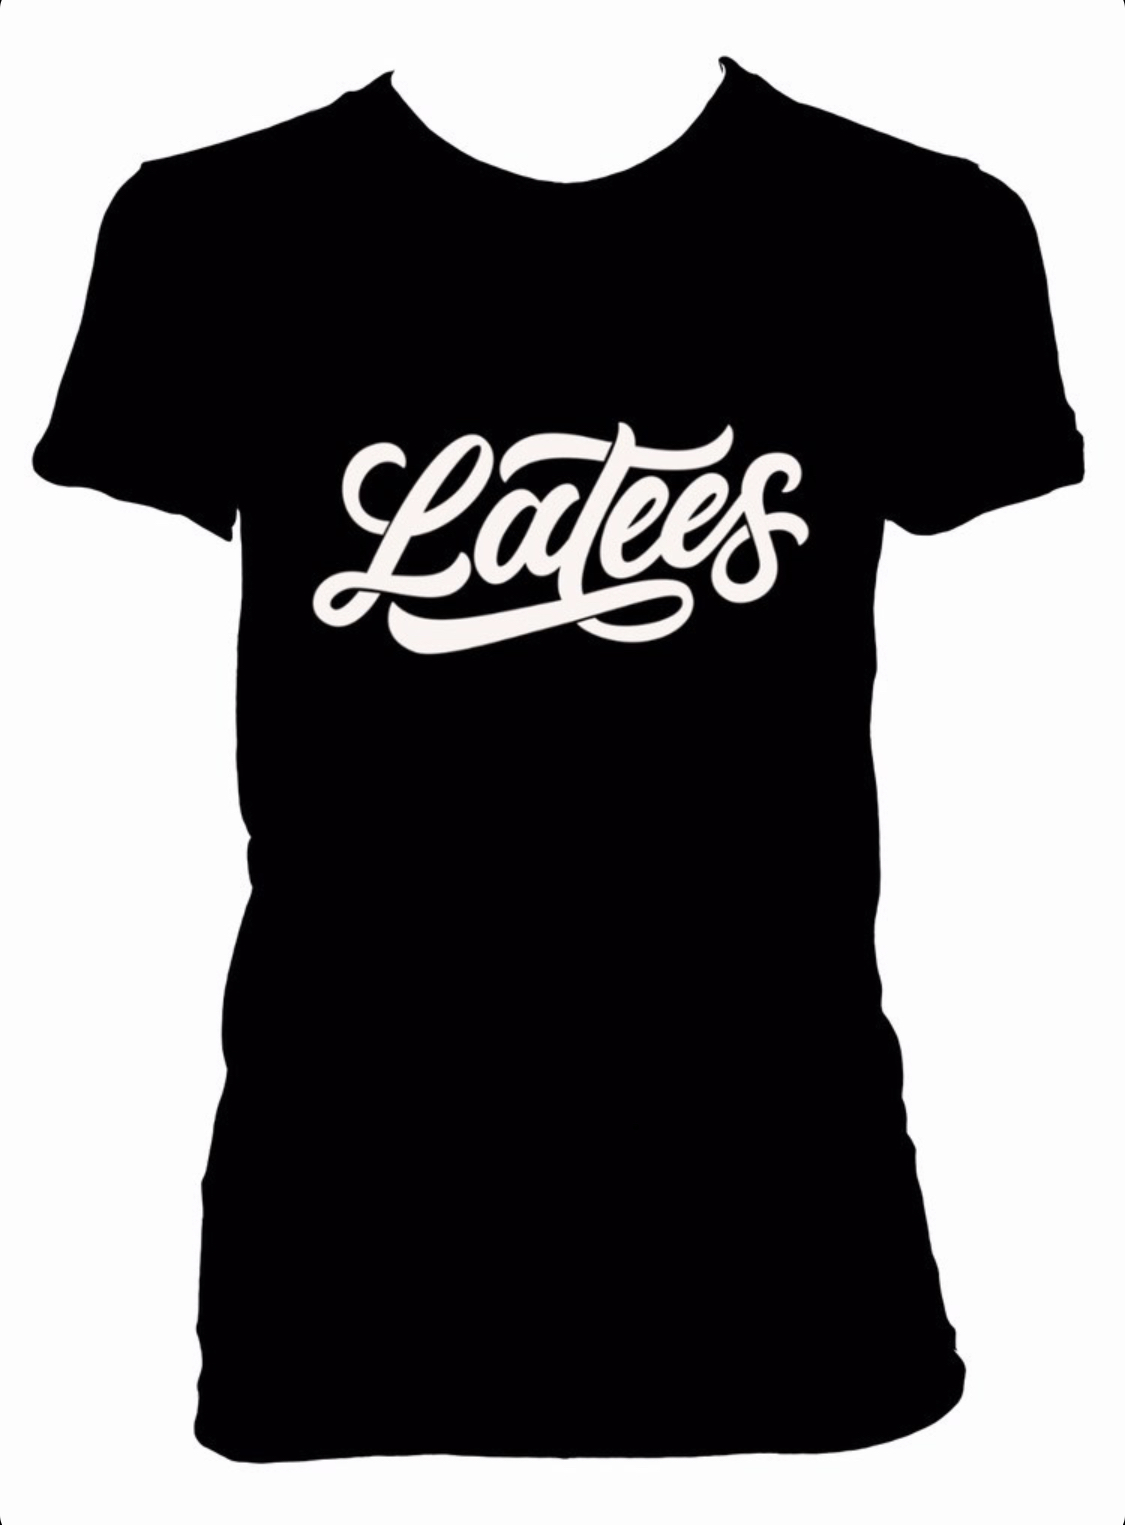 Latees (version II) • T-Shirt